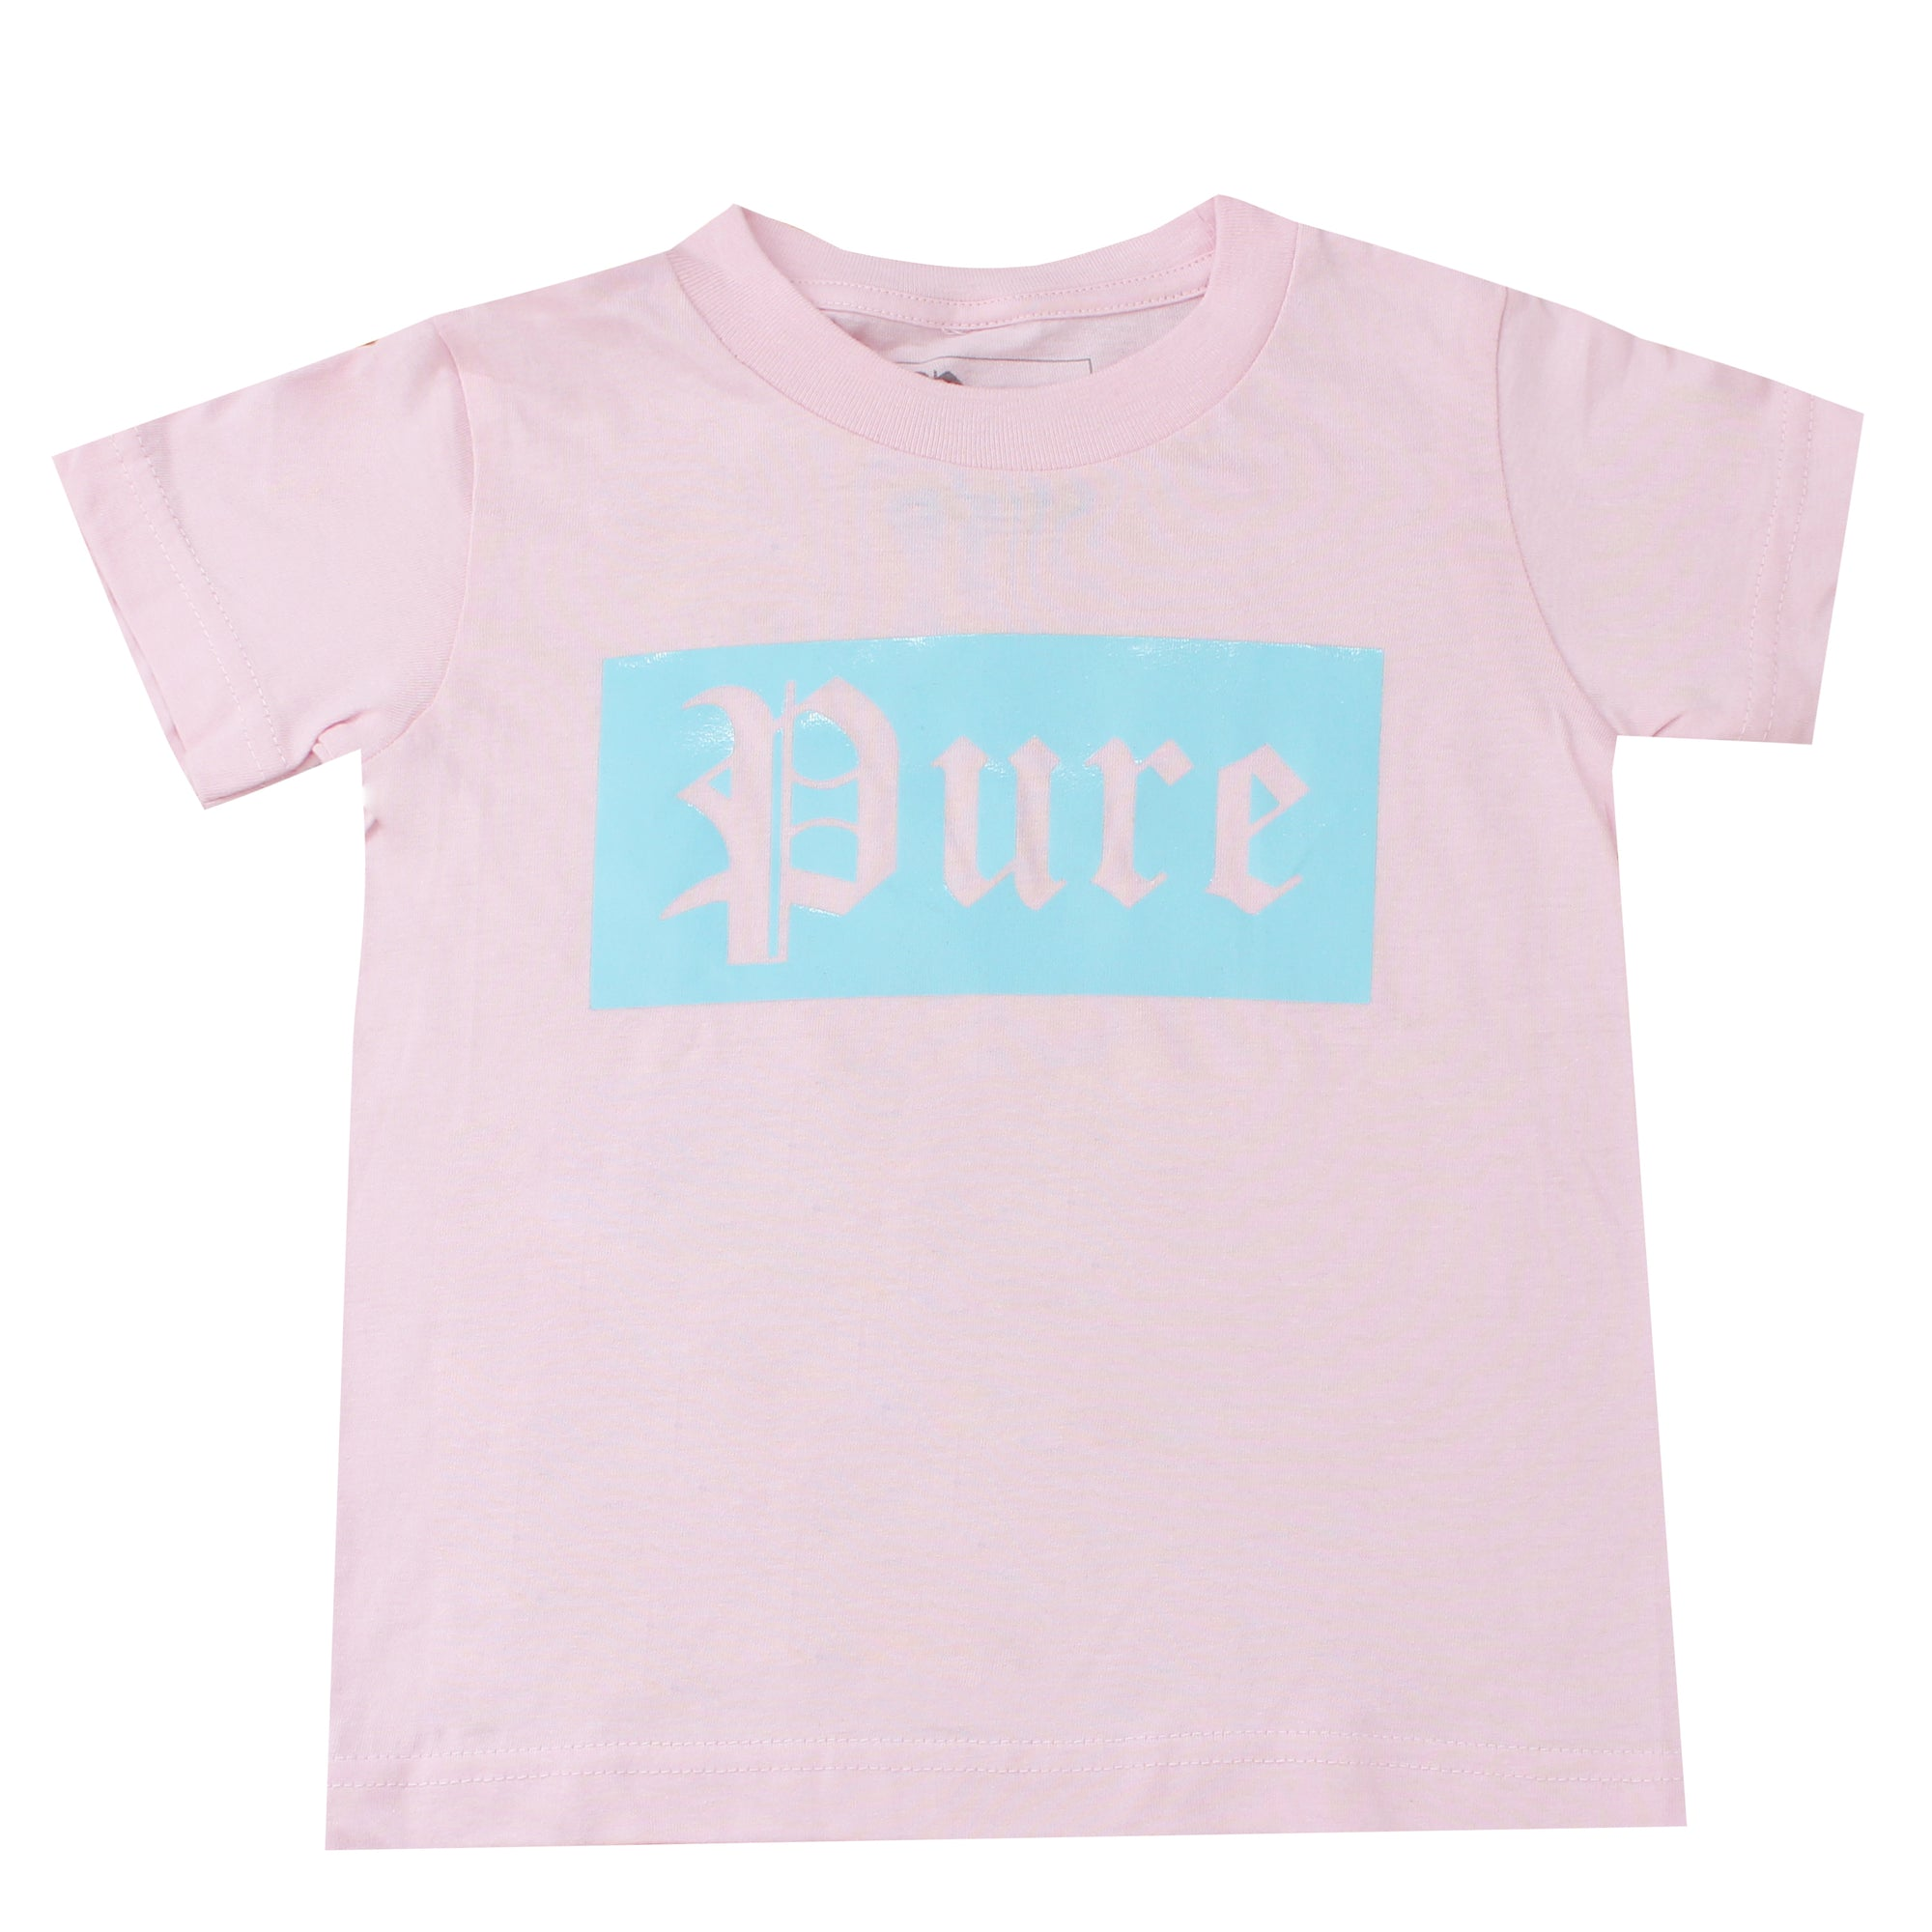 Kids Pure Tee Shirt with Blue Block Logo